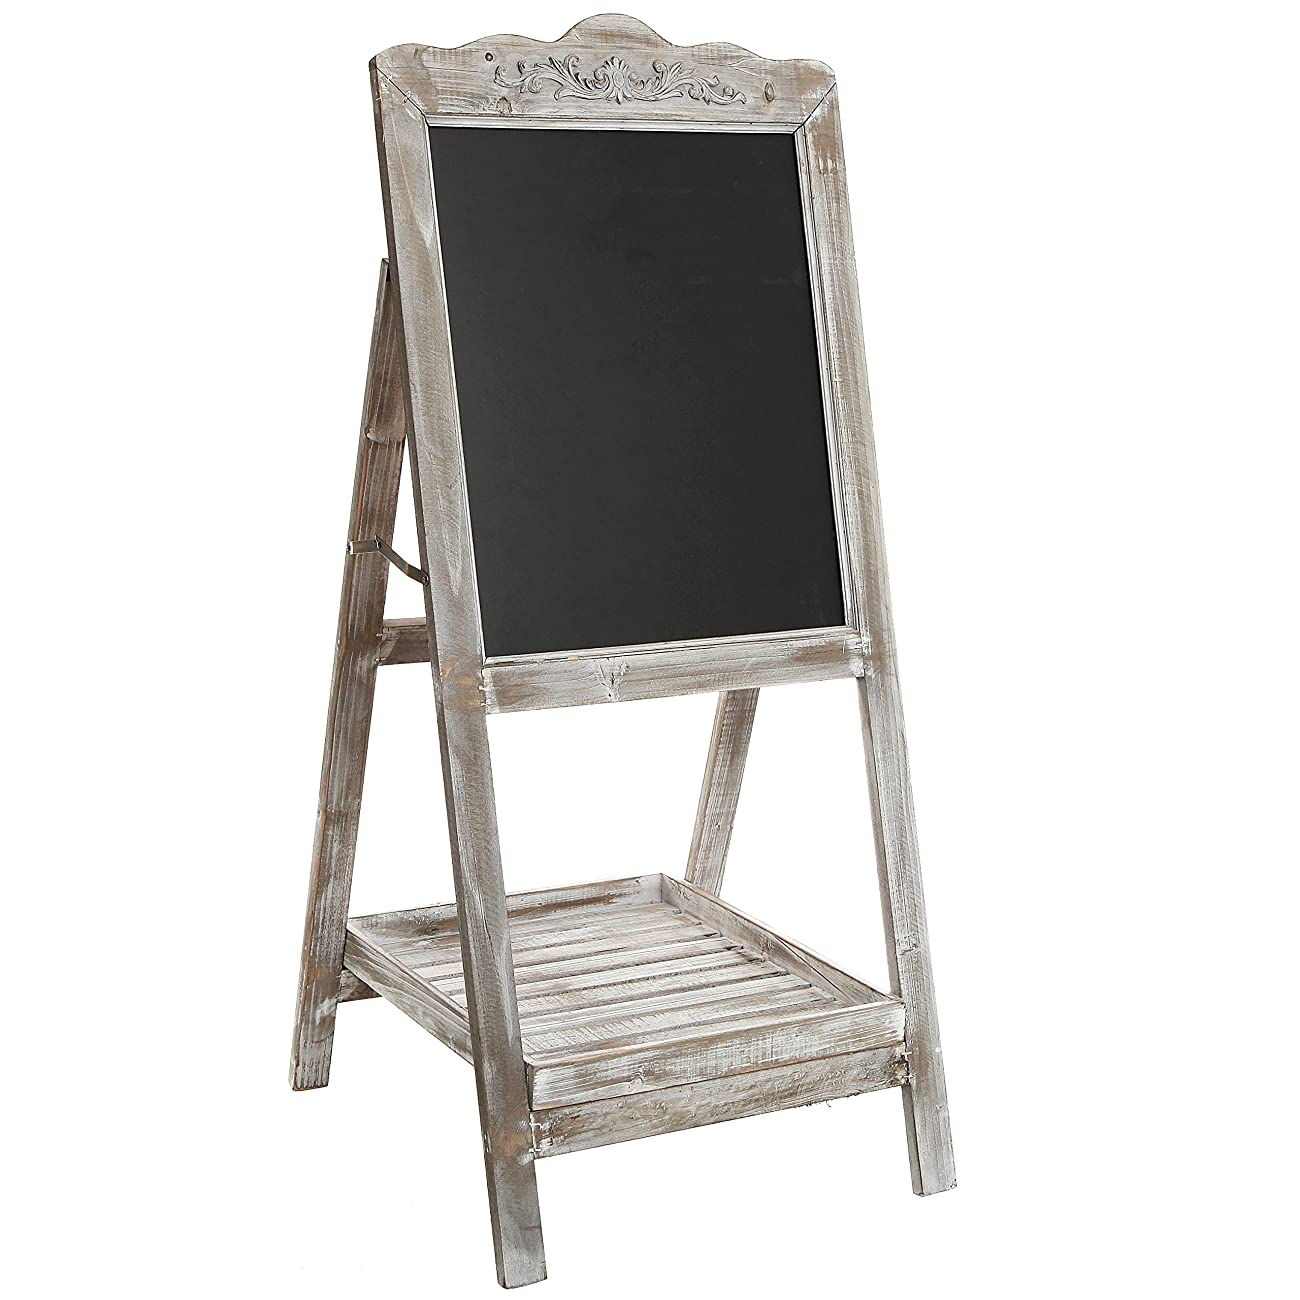 Decorative Vintage White Washed Brown Wood Large Freestanding Chalkboard Message Board Easel - MyGift 1